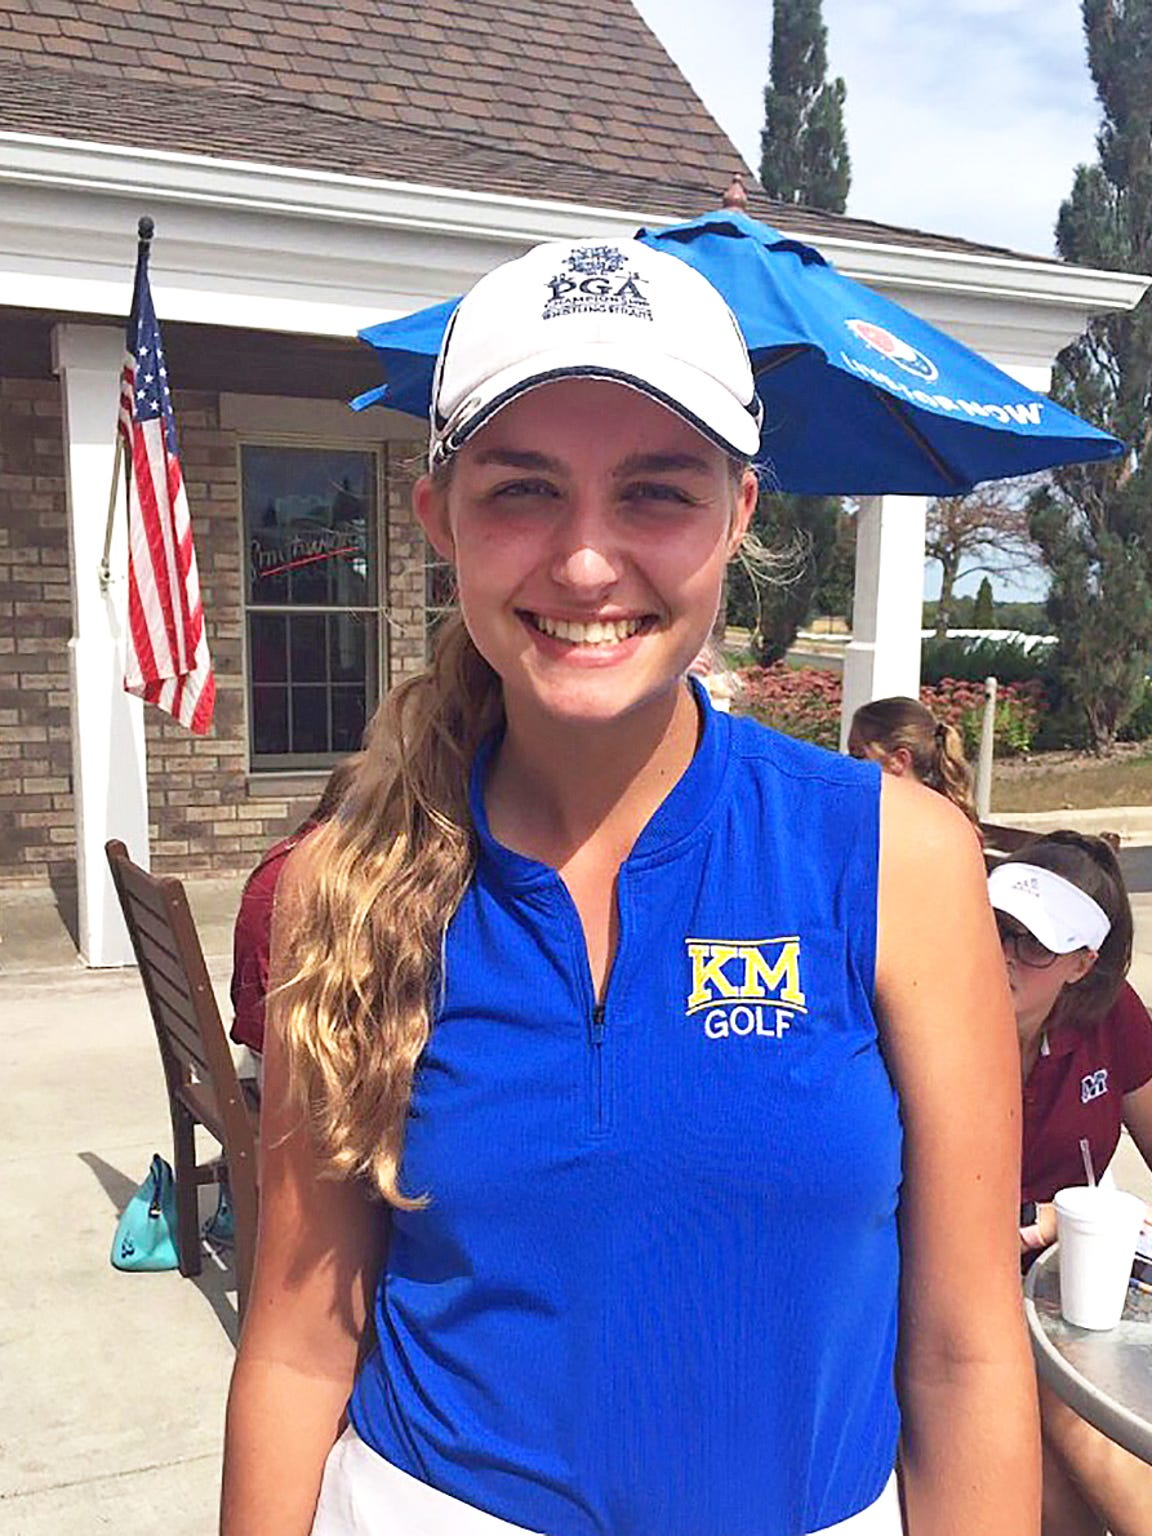 Kettle Moraine's Abby Cavaiani finished second at the WIAA state girls golf meet in the fall. But she will be remembered for setting a course, conference and state record 60 at the Classic 8 conference championship meet at The Broadlands earlier in the season.